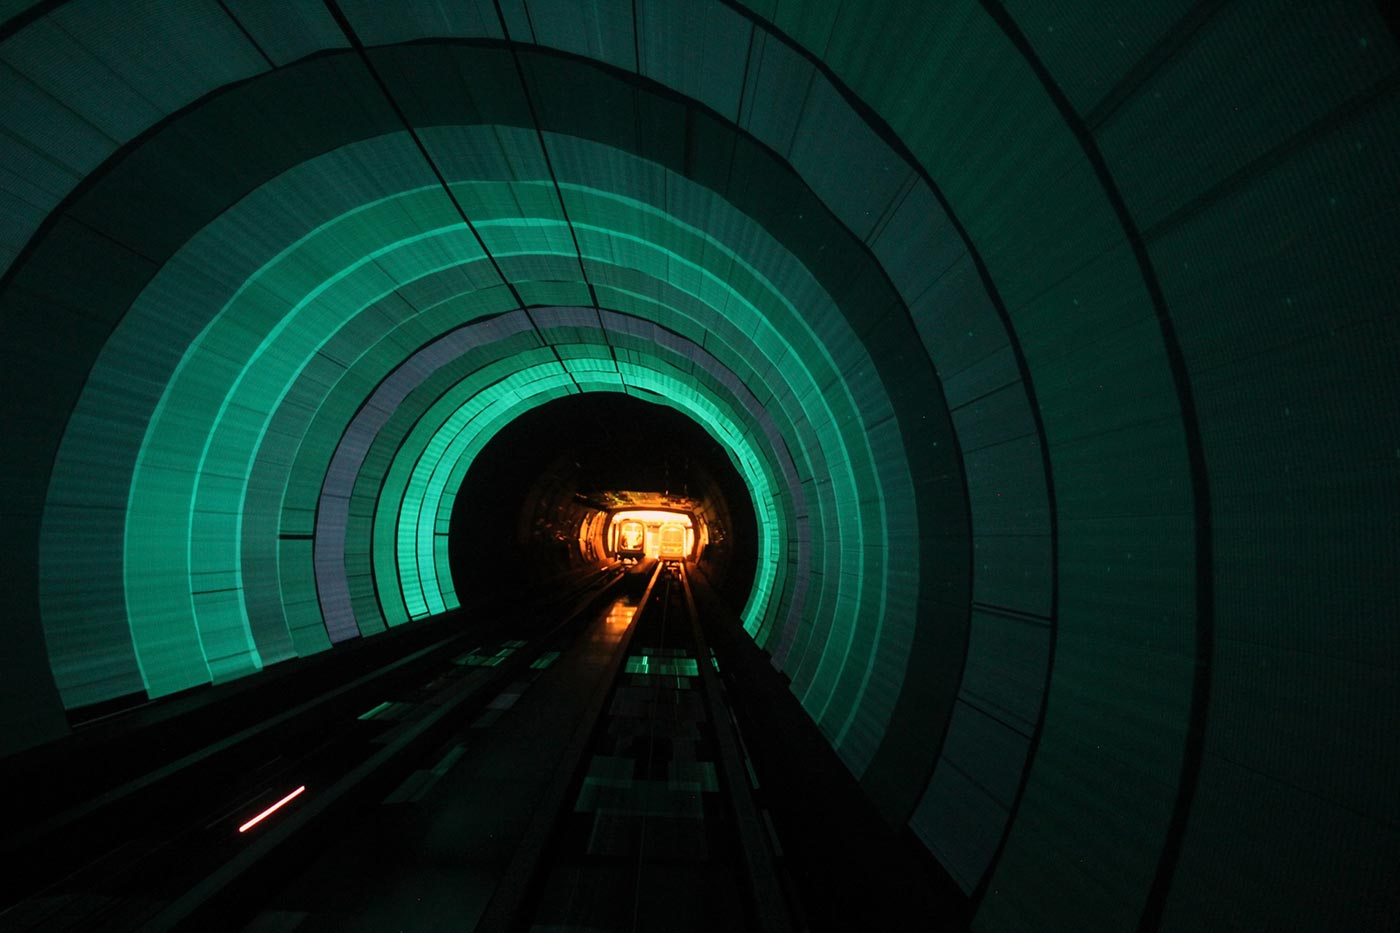 Green train tunnel